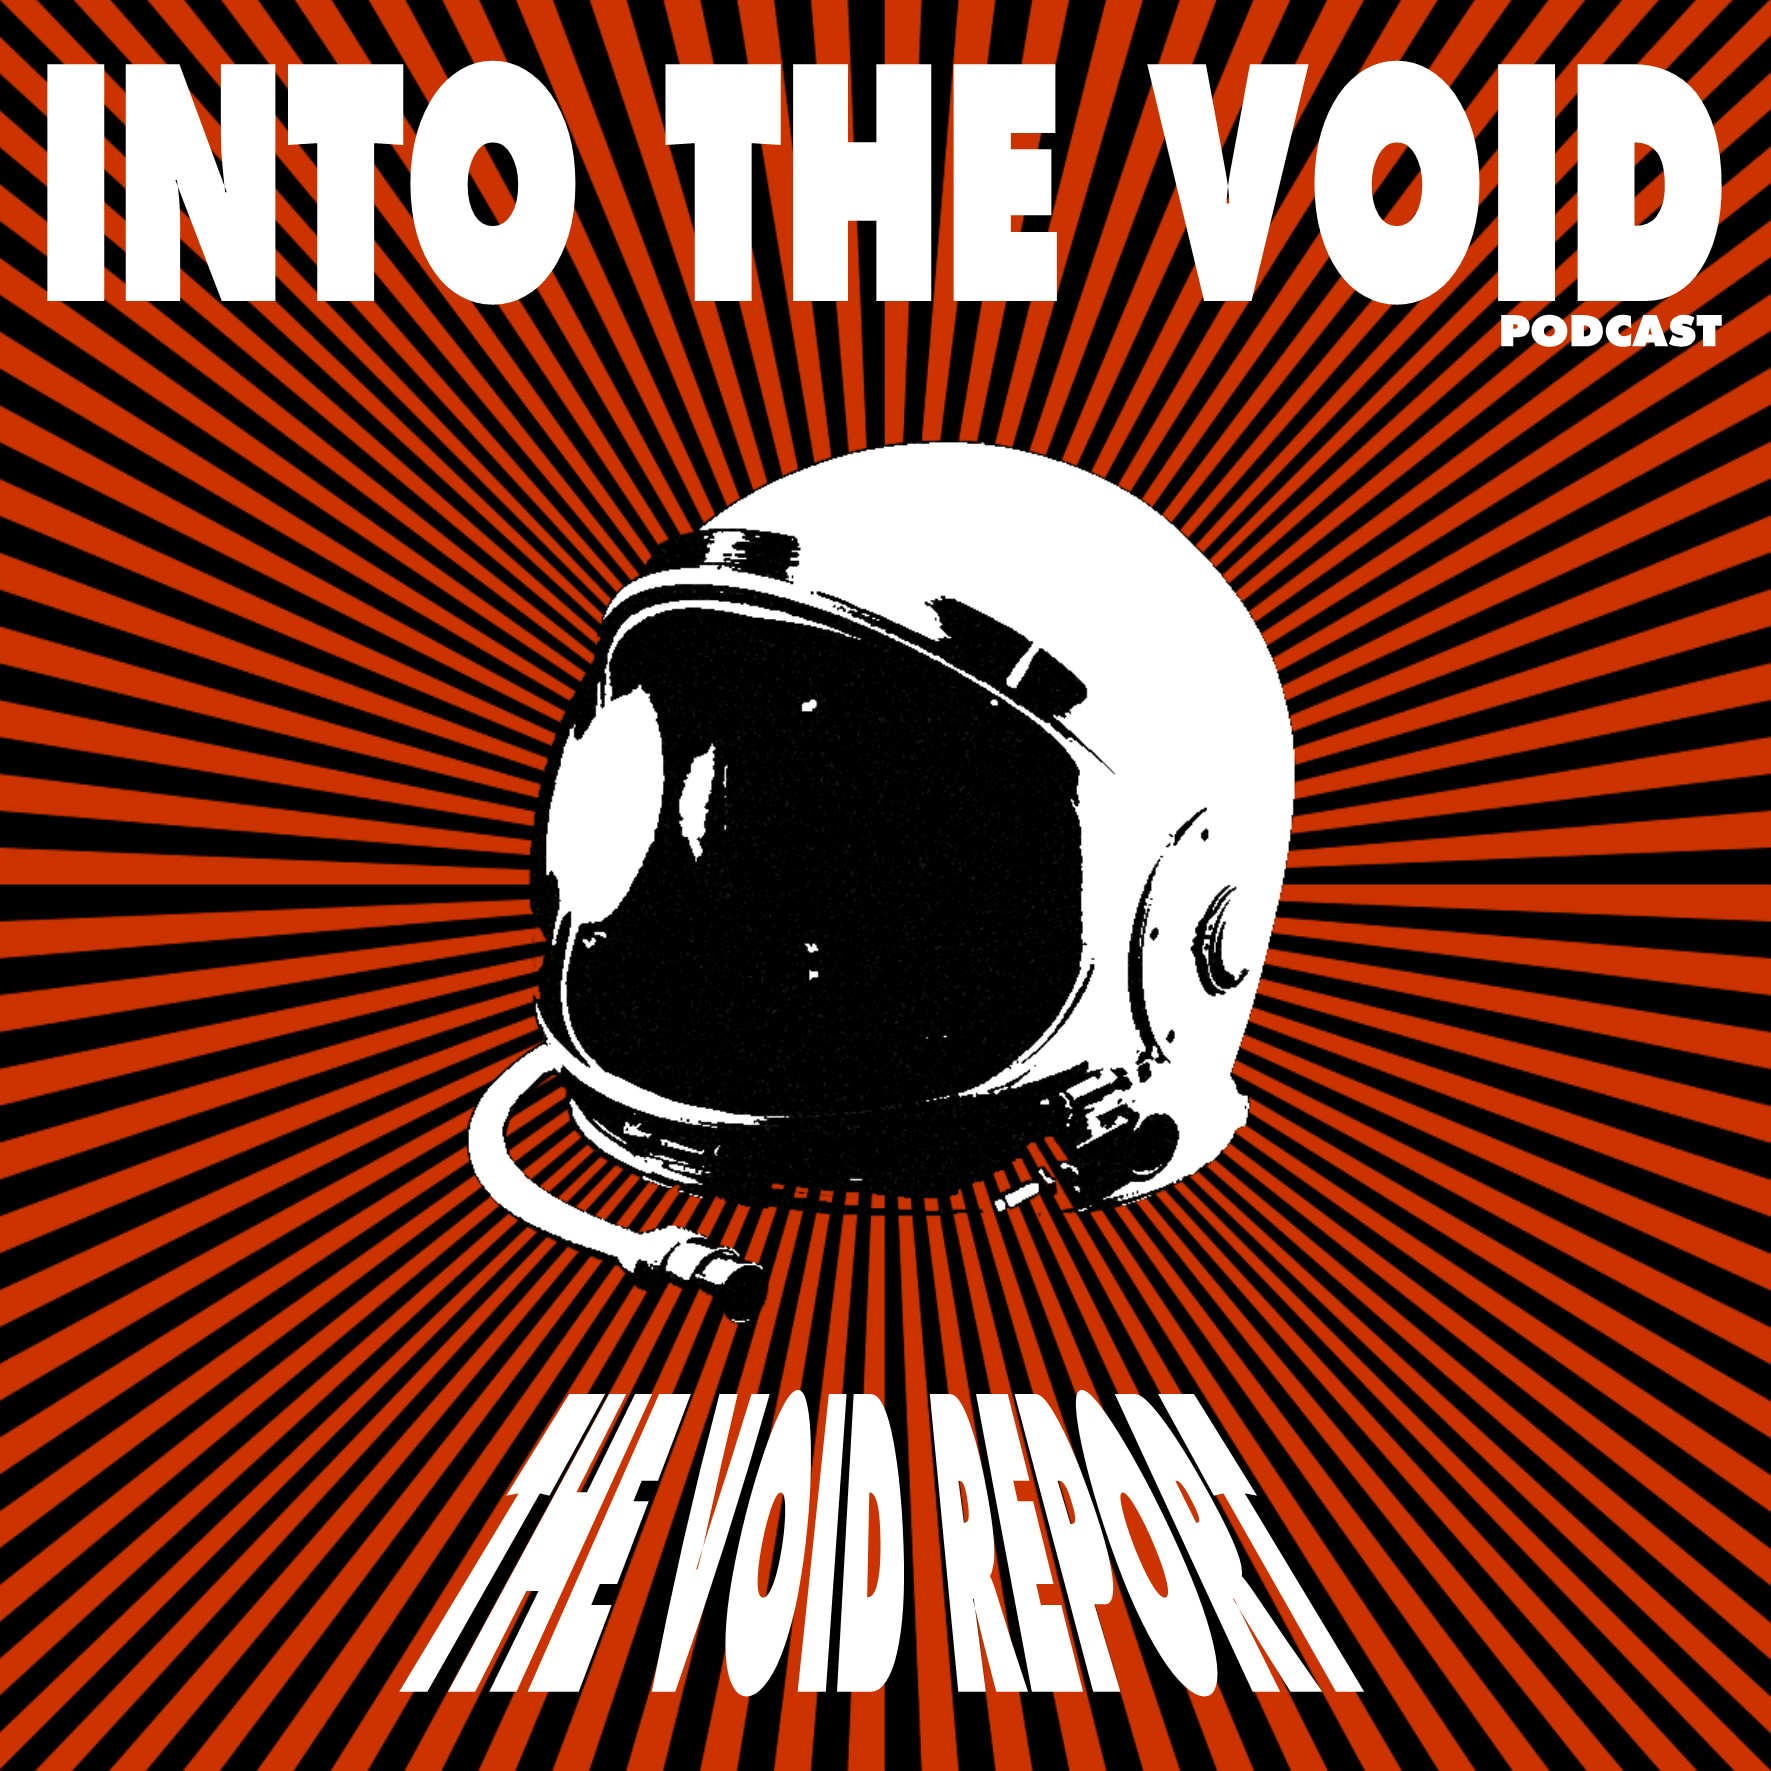 The November Void Report - Into The Void Podcast